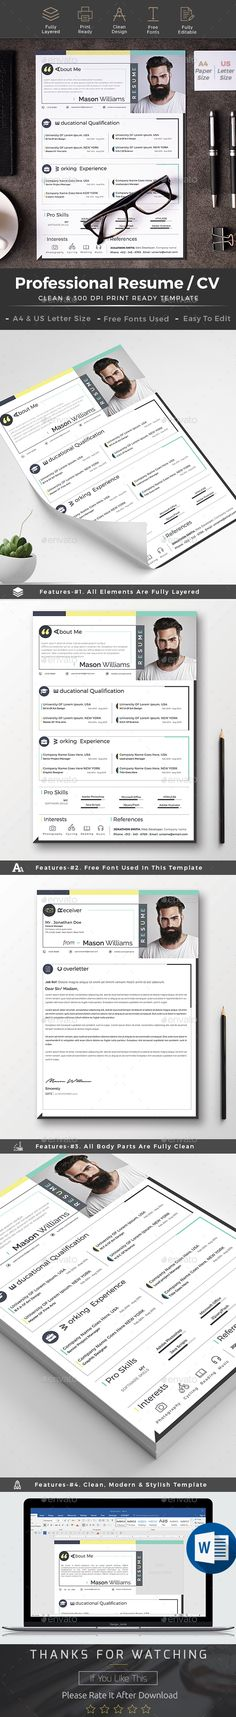 Resume Template PSD, MS Word - A4 + US Letter Size